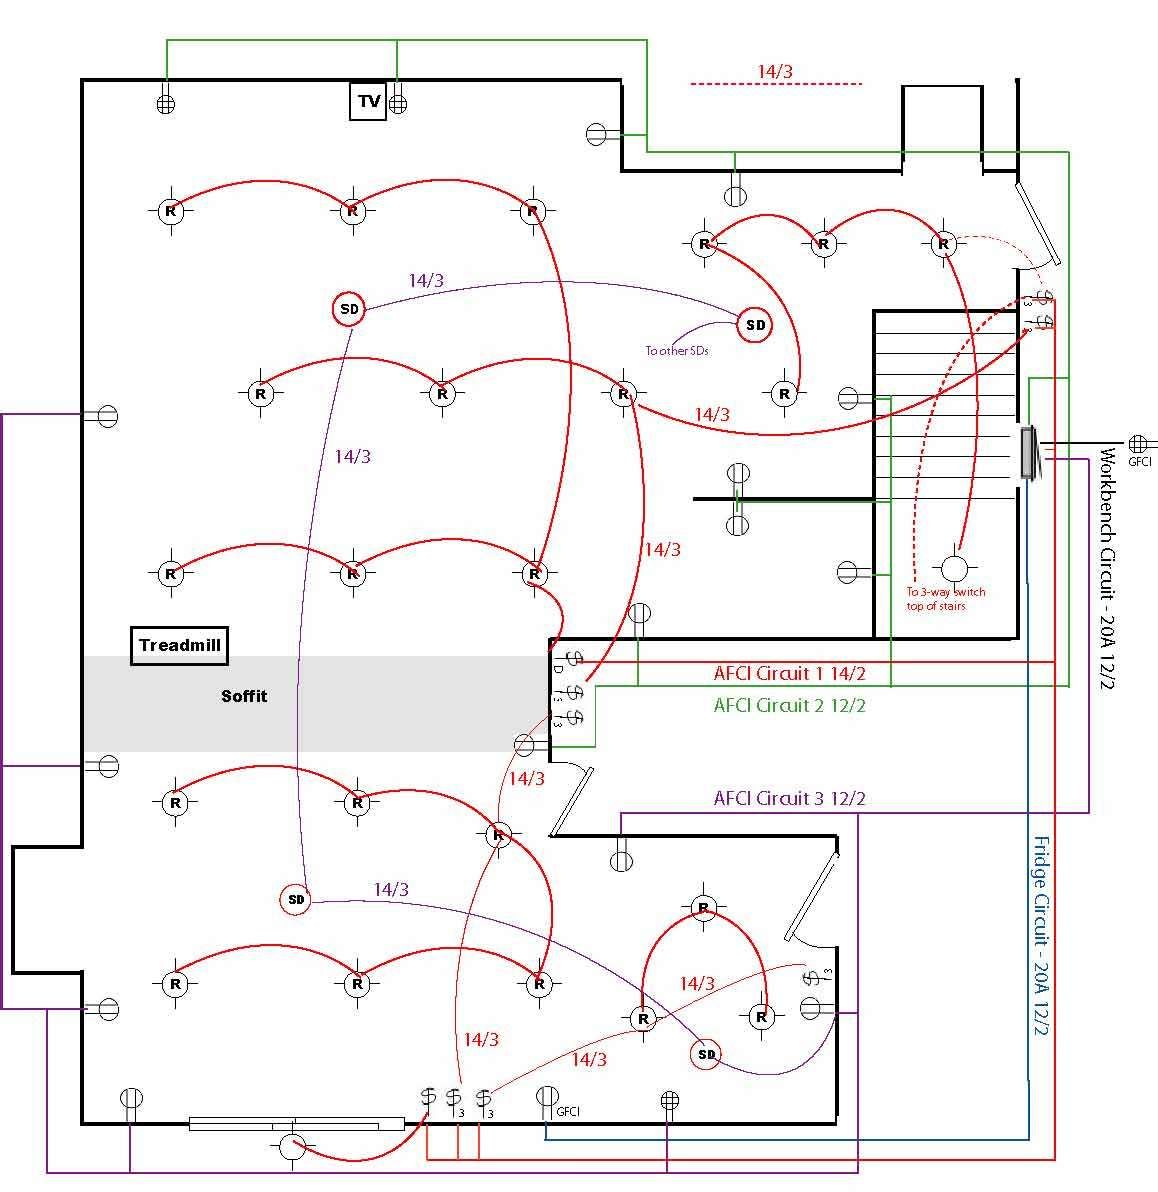 1300sa Wiring Electrical Residential Diagramstob Full Hd Version Residential Diagramstob Kami Diagrambase Emballages Sous Vide Fr